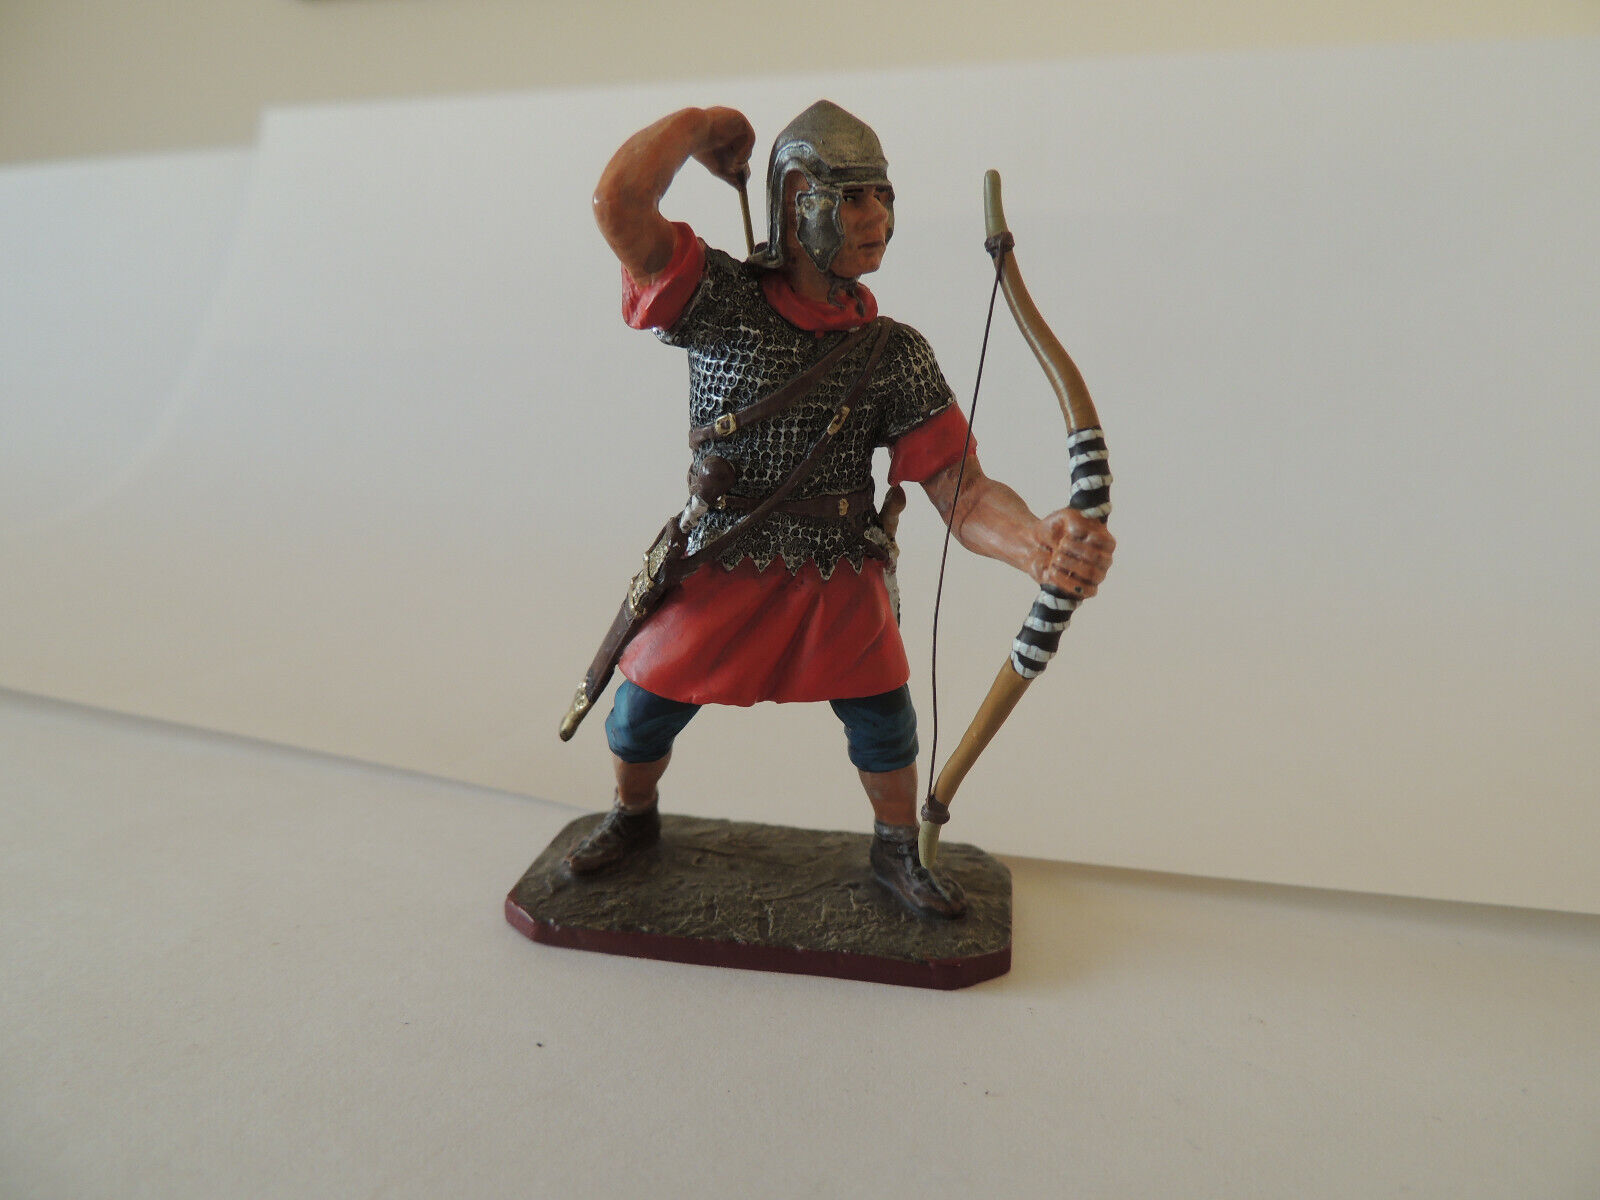 KING & COUNTRY RO37R-IMPERO ROMANO-ARCIERE ROMANO-ROMAN ARCHER.